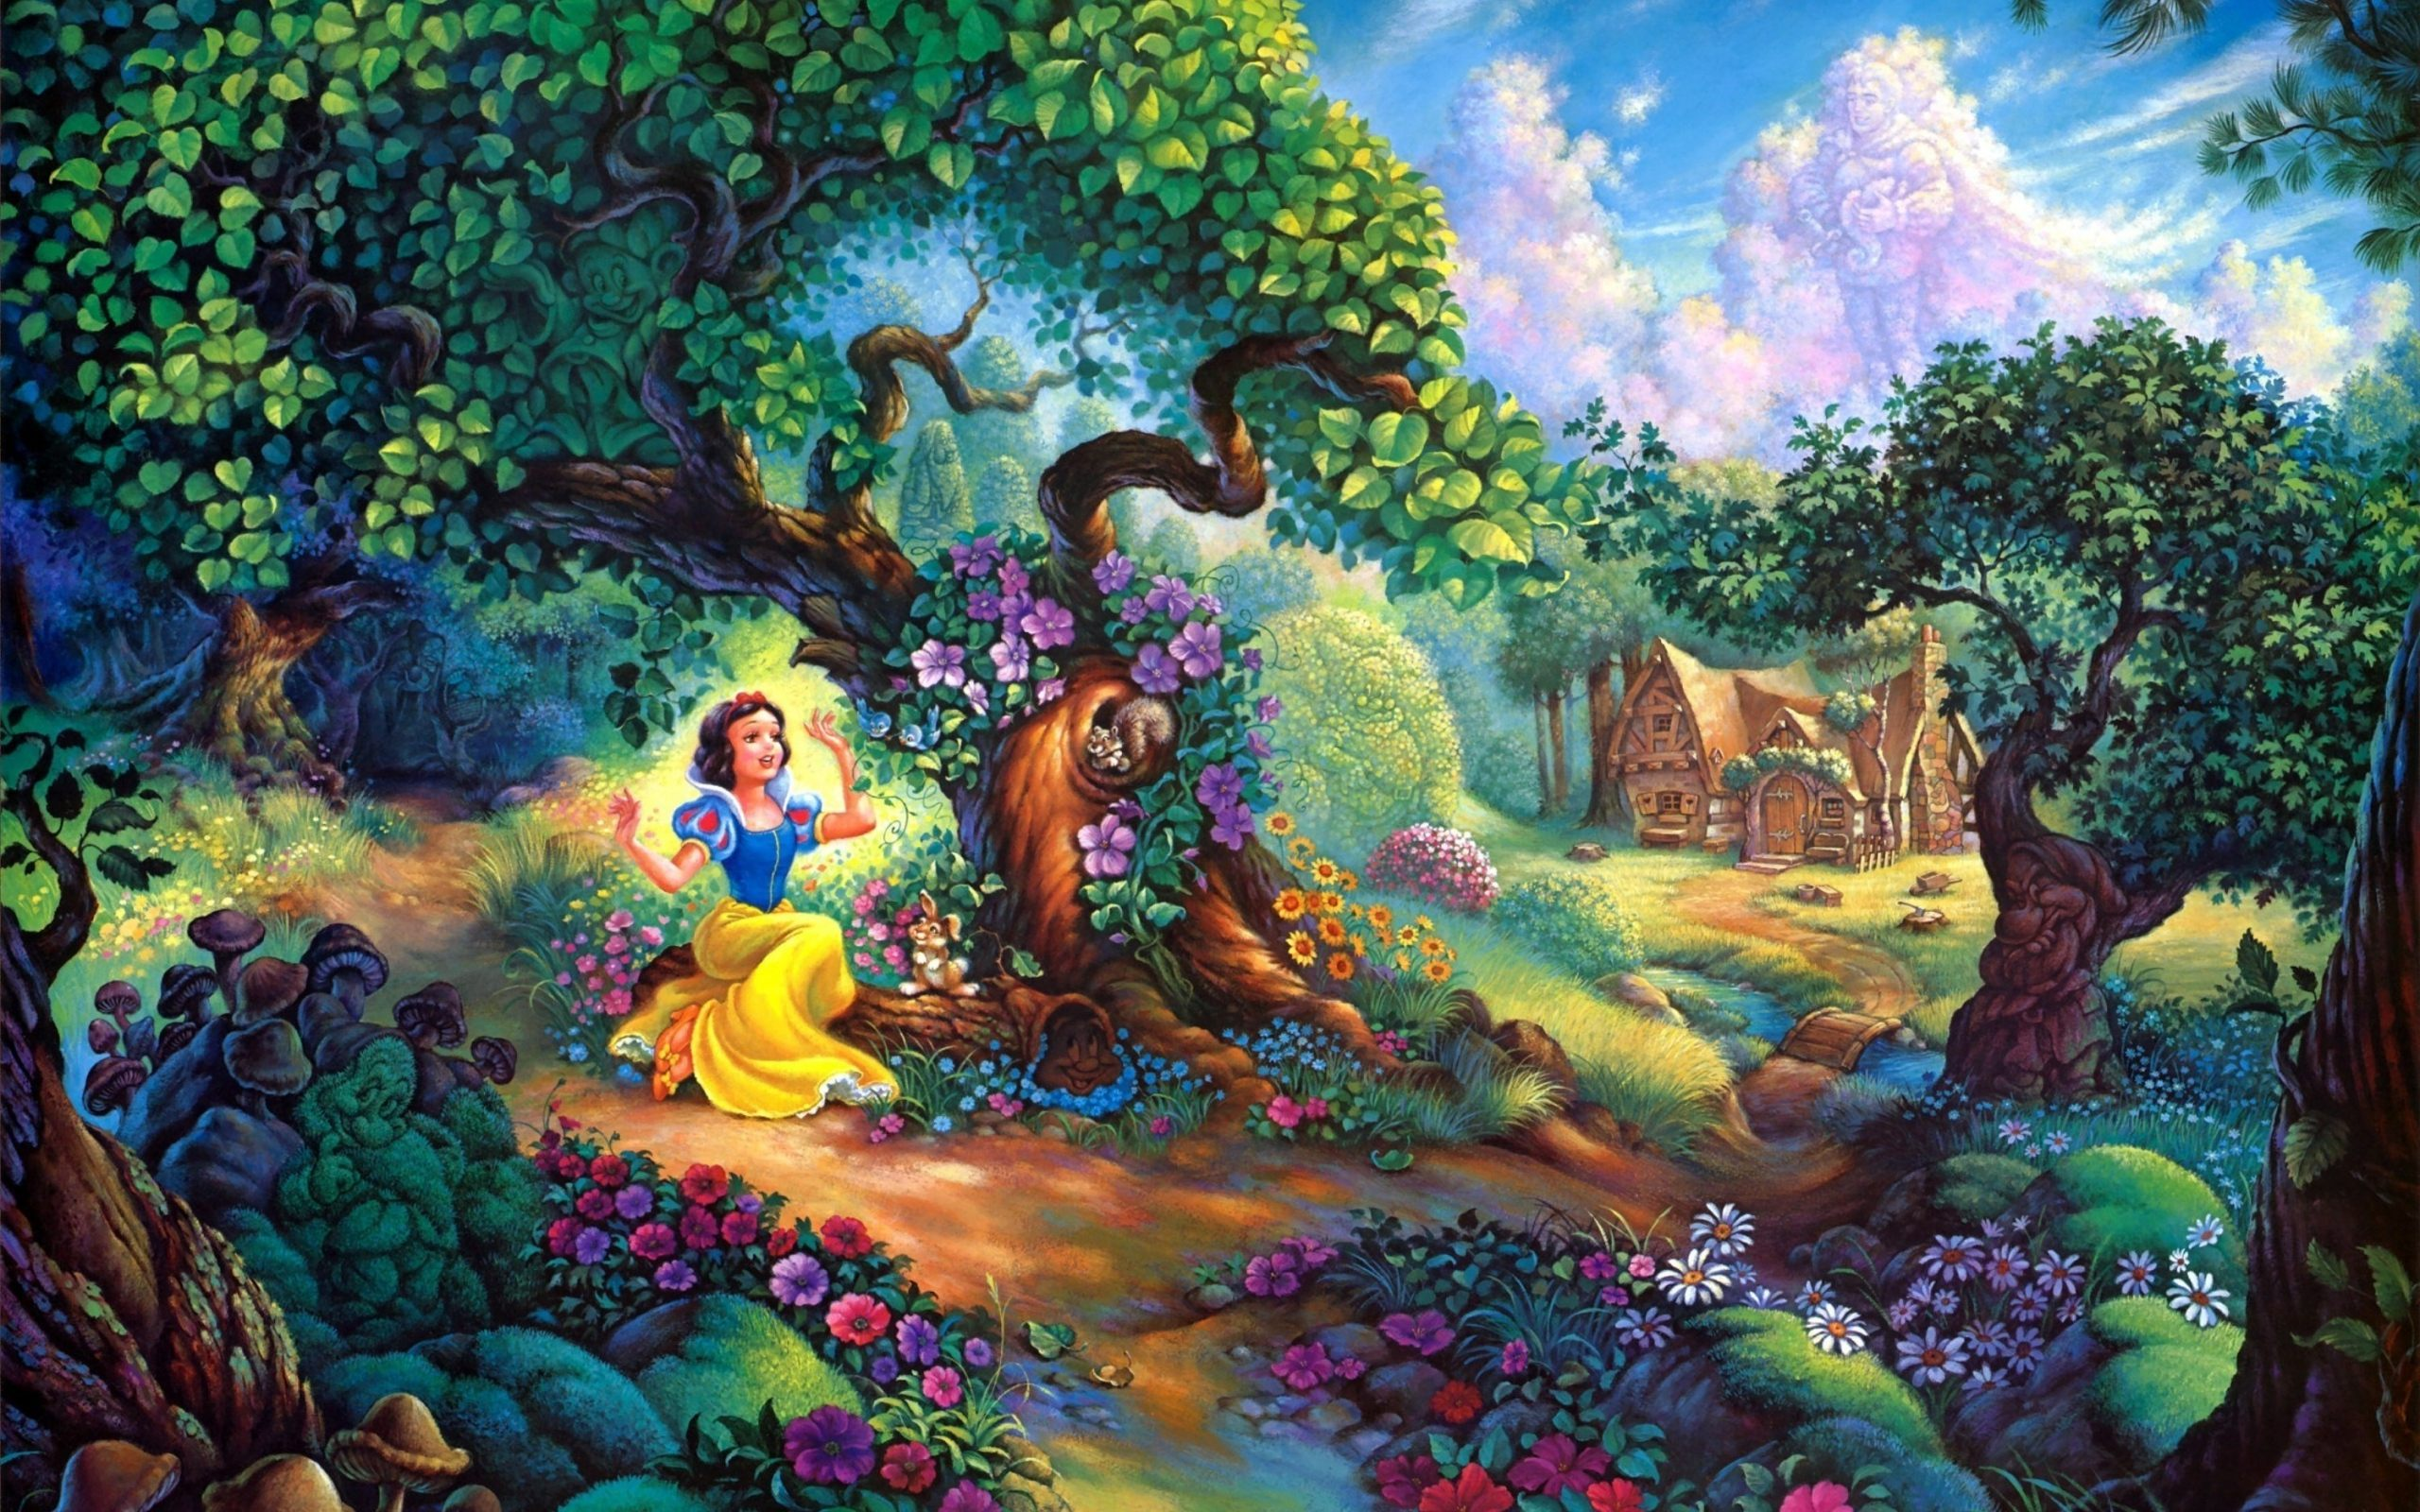 Disney Wallpapers   HD Wallpapers Backgrounds of Your Choice 2560x1600